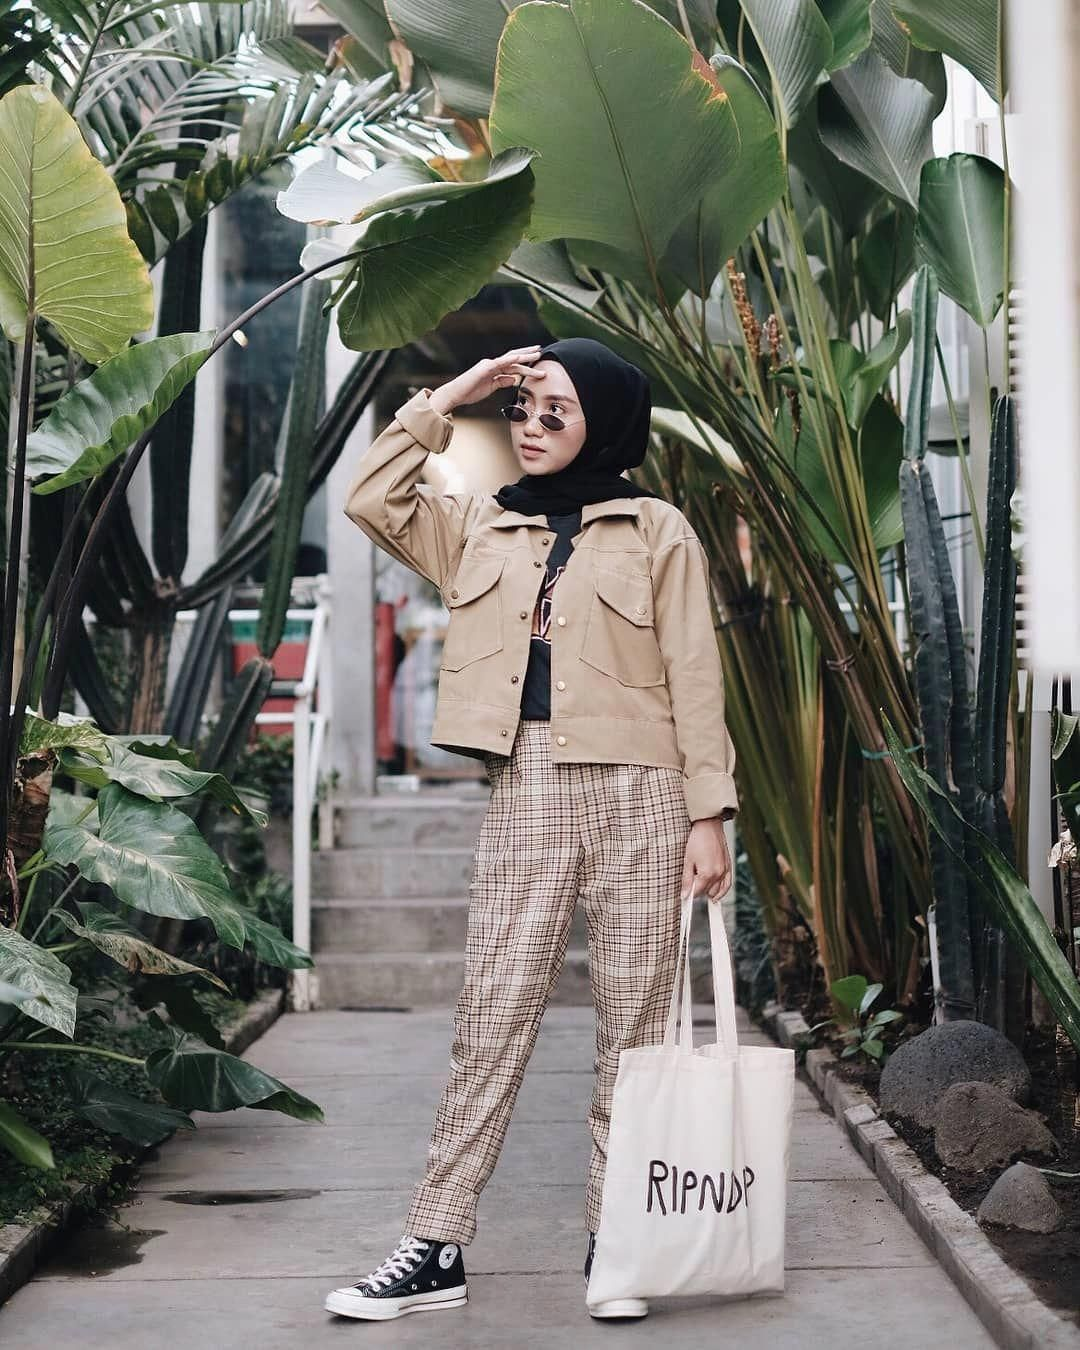 Trend Hijab Style Ootd 2018 Di Instagram Inspiration Hijab Style Outfit Of The Day Ootd 2018 Remaja Indonesia Hijab Casual Hijab Fashion Hijab Style Casual